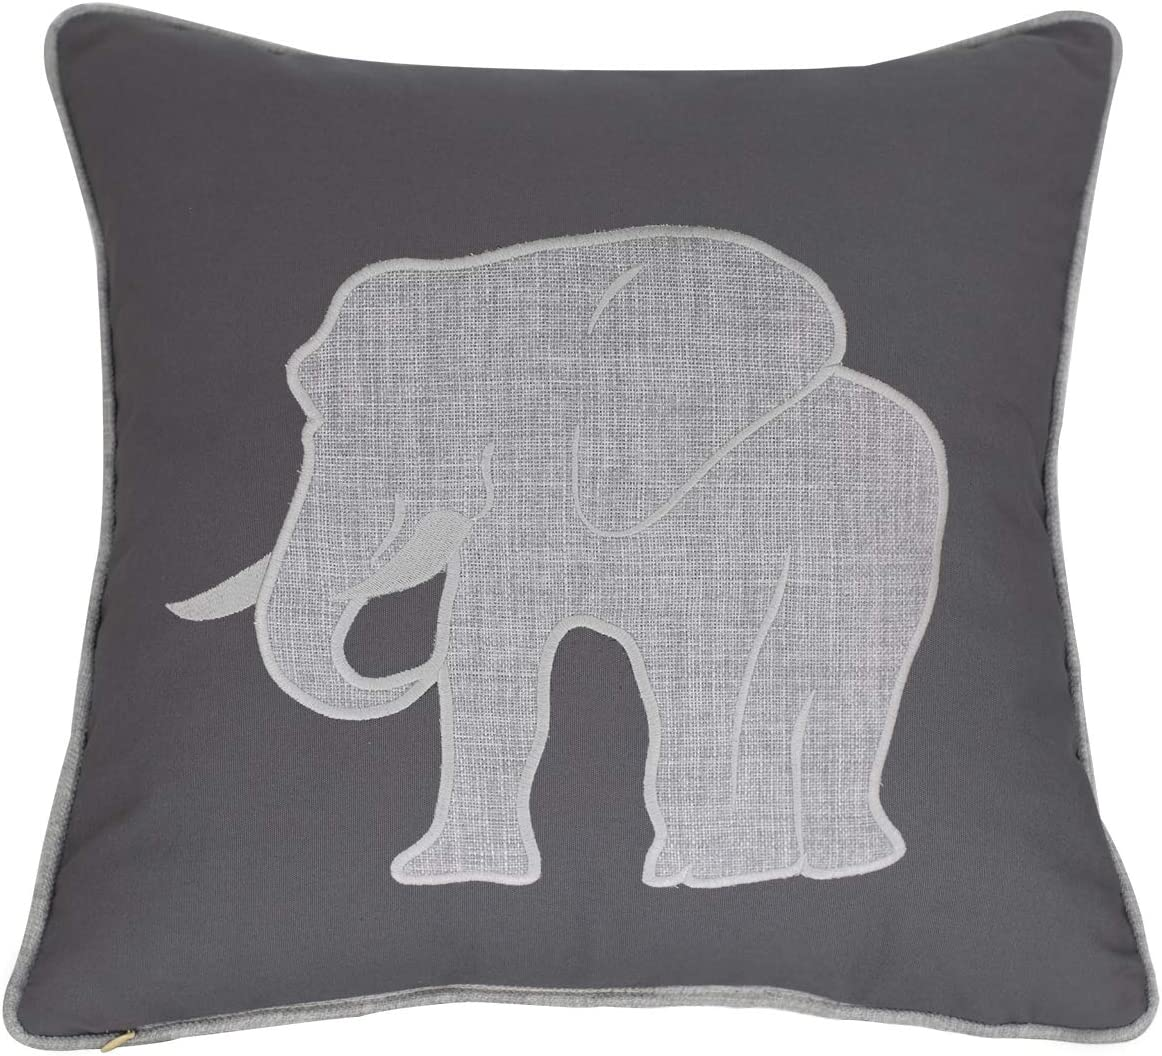 Millianess Elephant Pillow Case Decorative Cotton Linen Embroidered Cushions Covers 18x18 Inches (Grey)